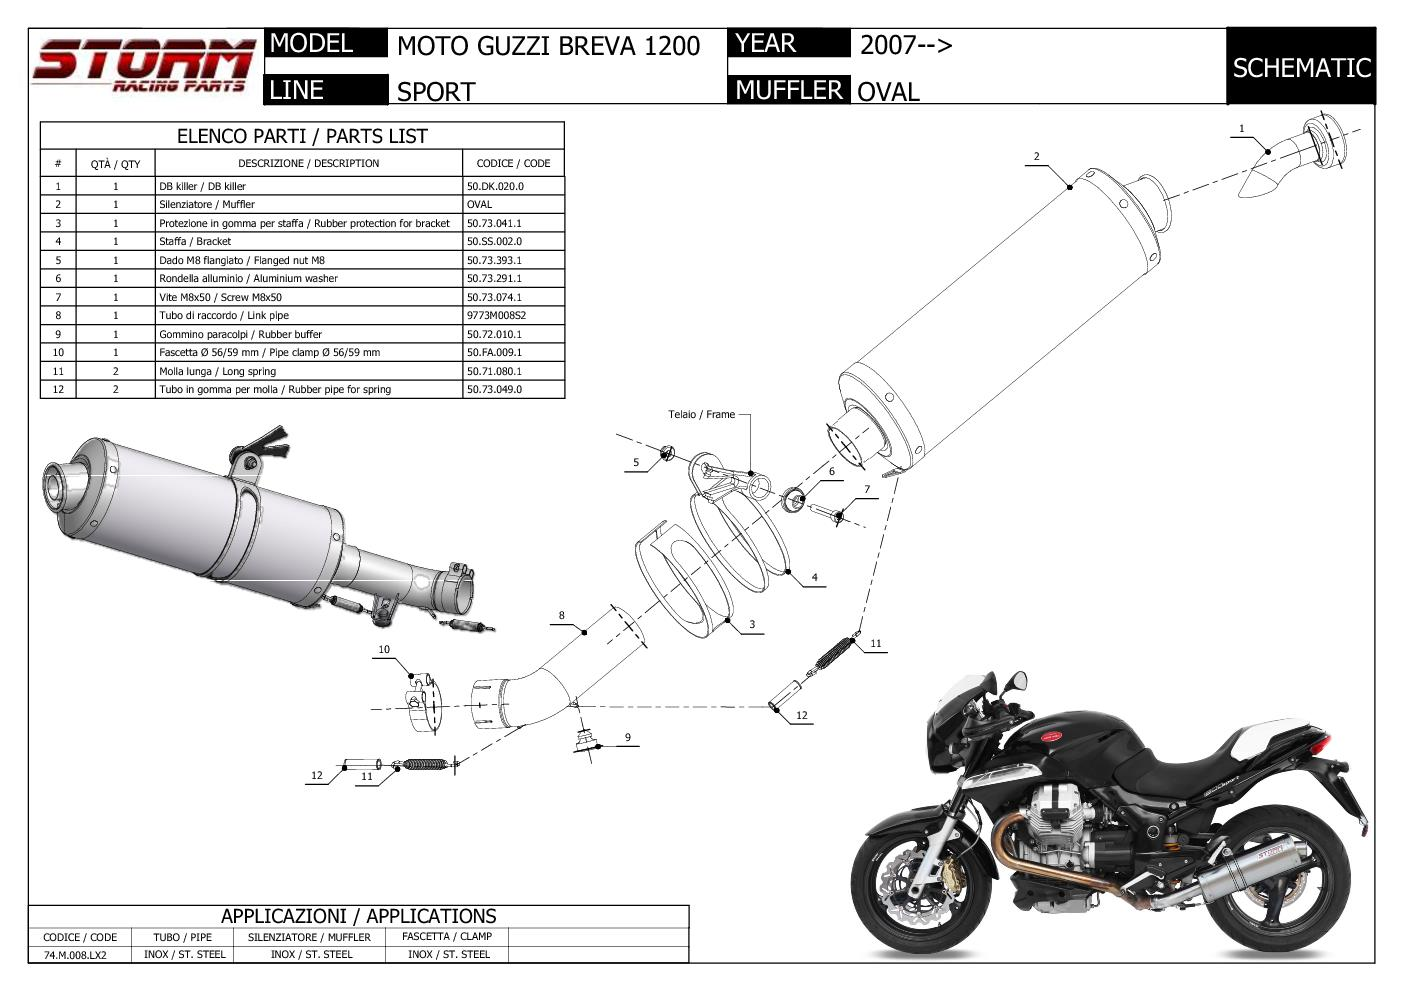 Exhaust Storm by Mivv Muffler Oval Steel for Moto Guzzi